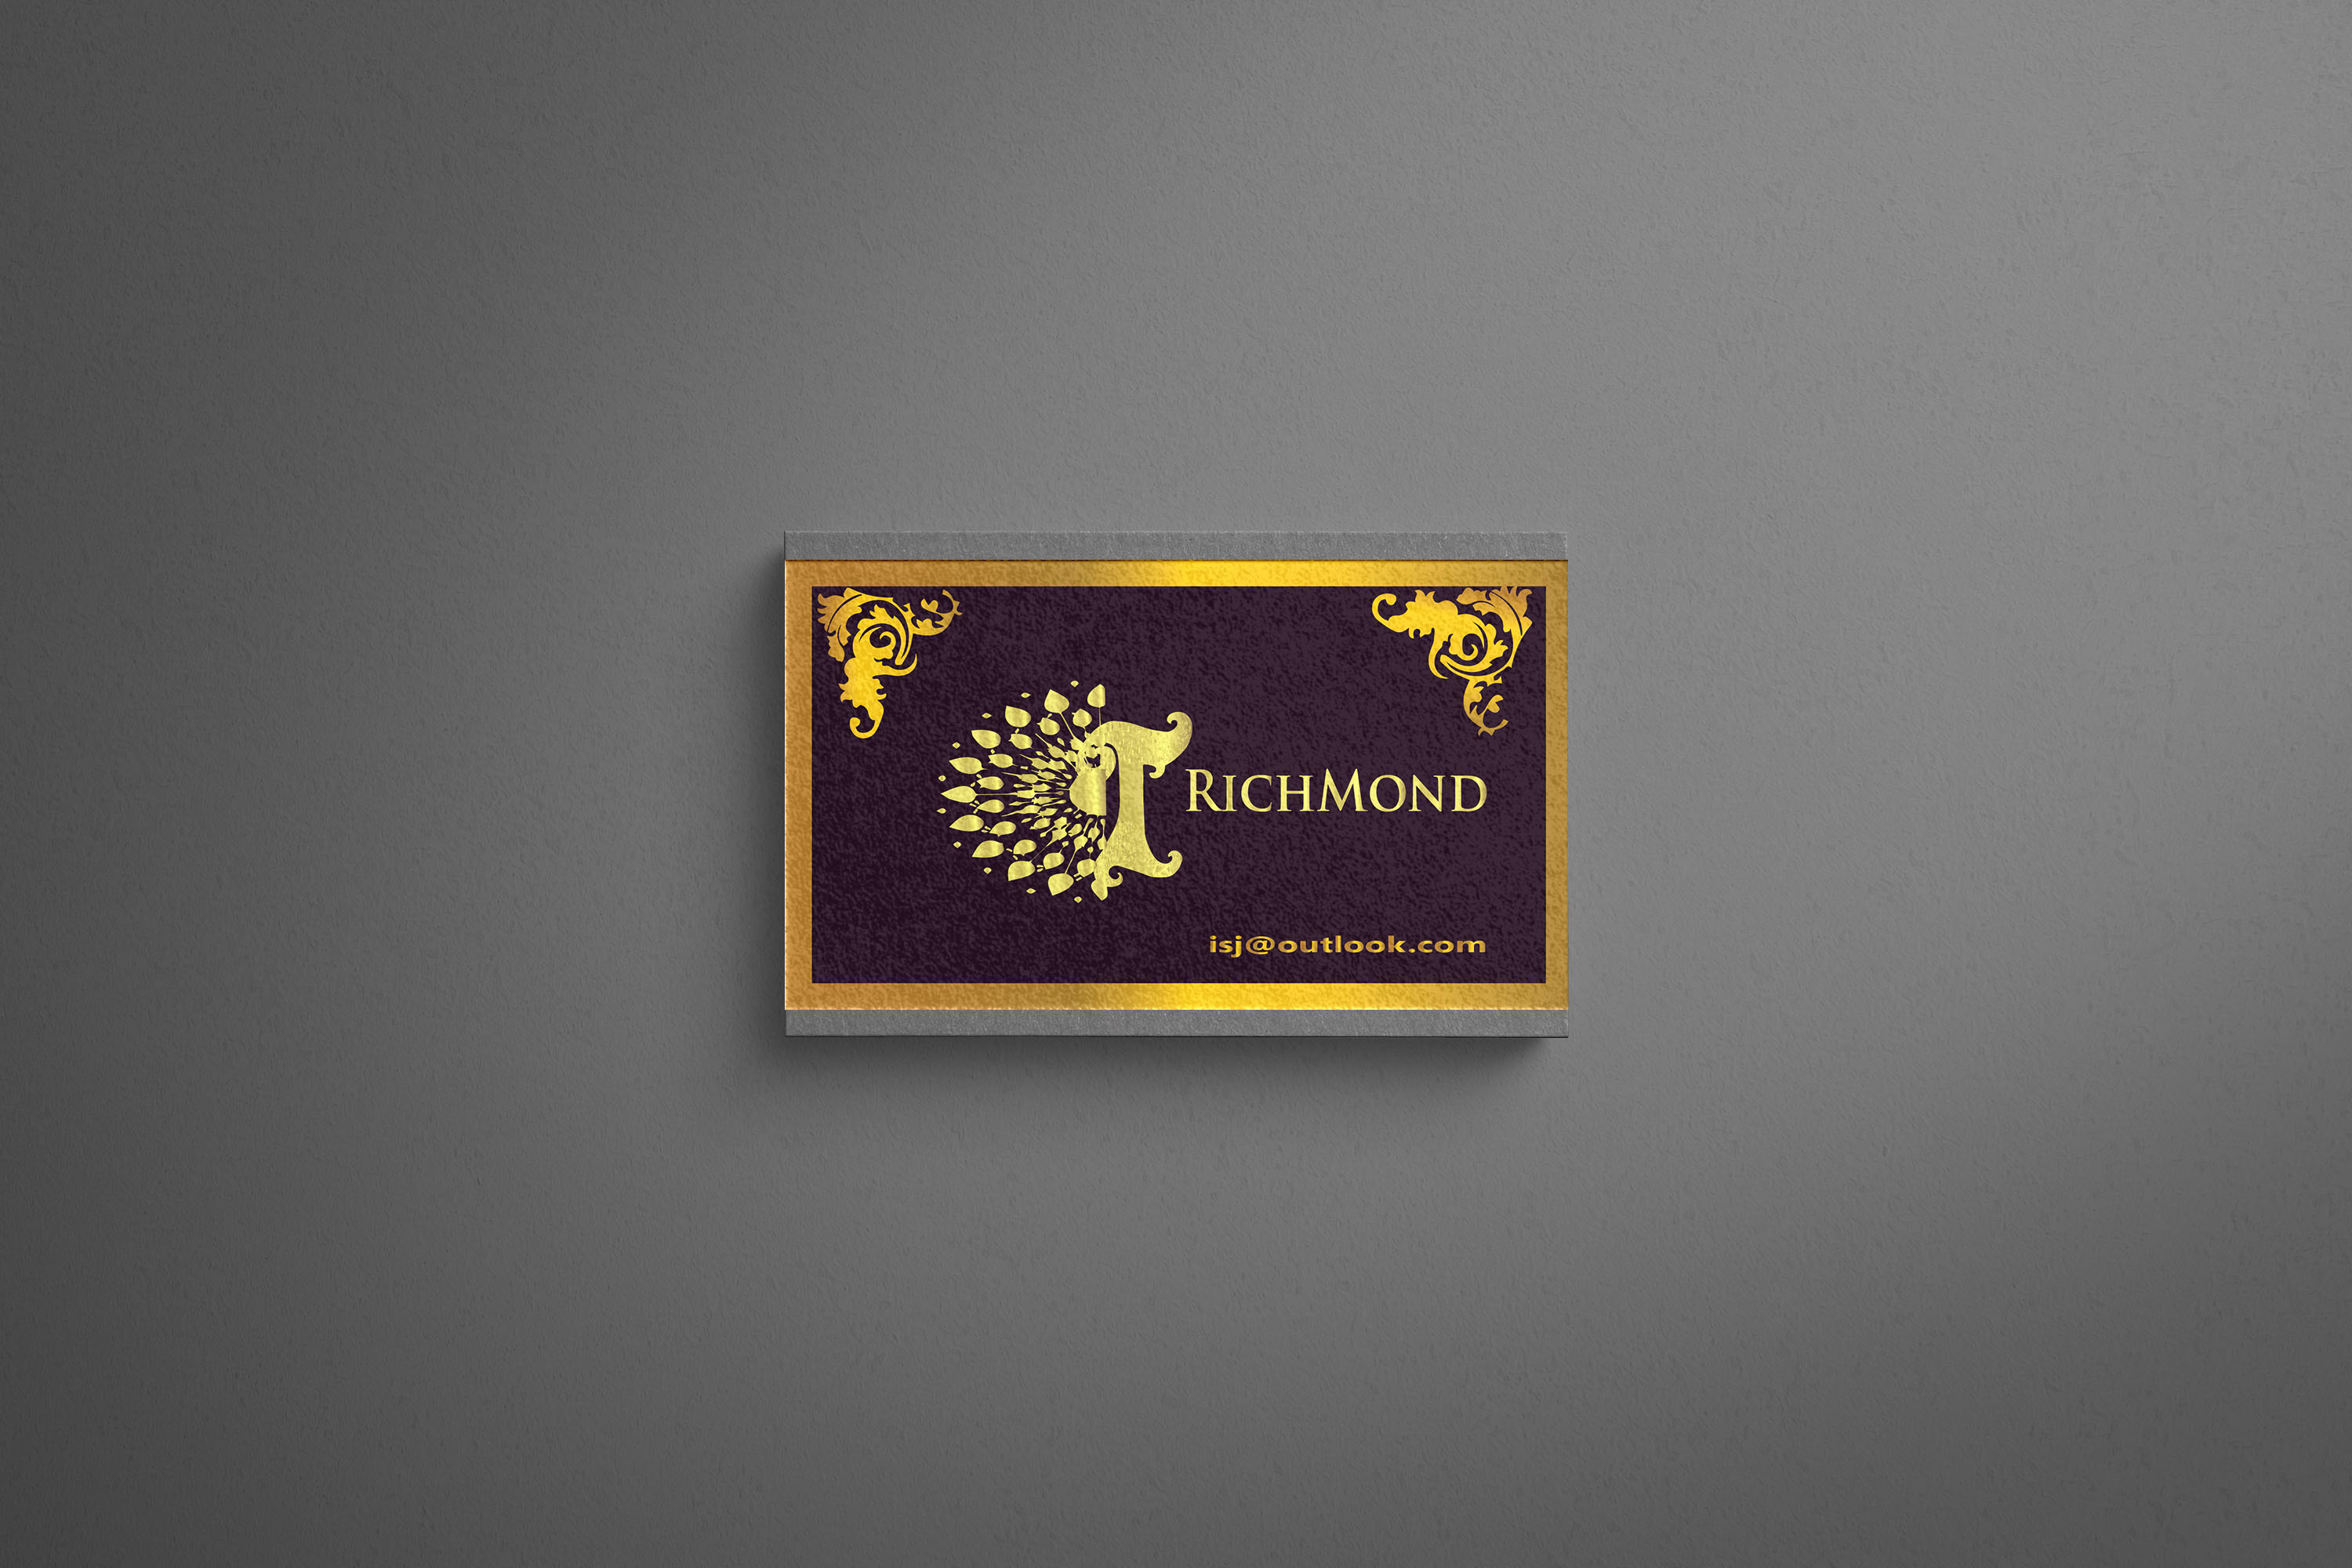 I will provide you a fantastically luxurious business card